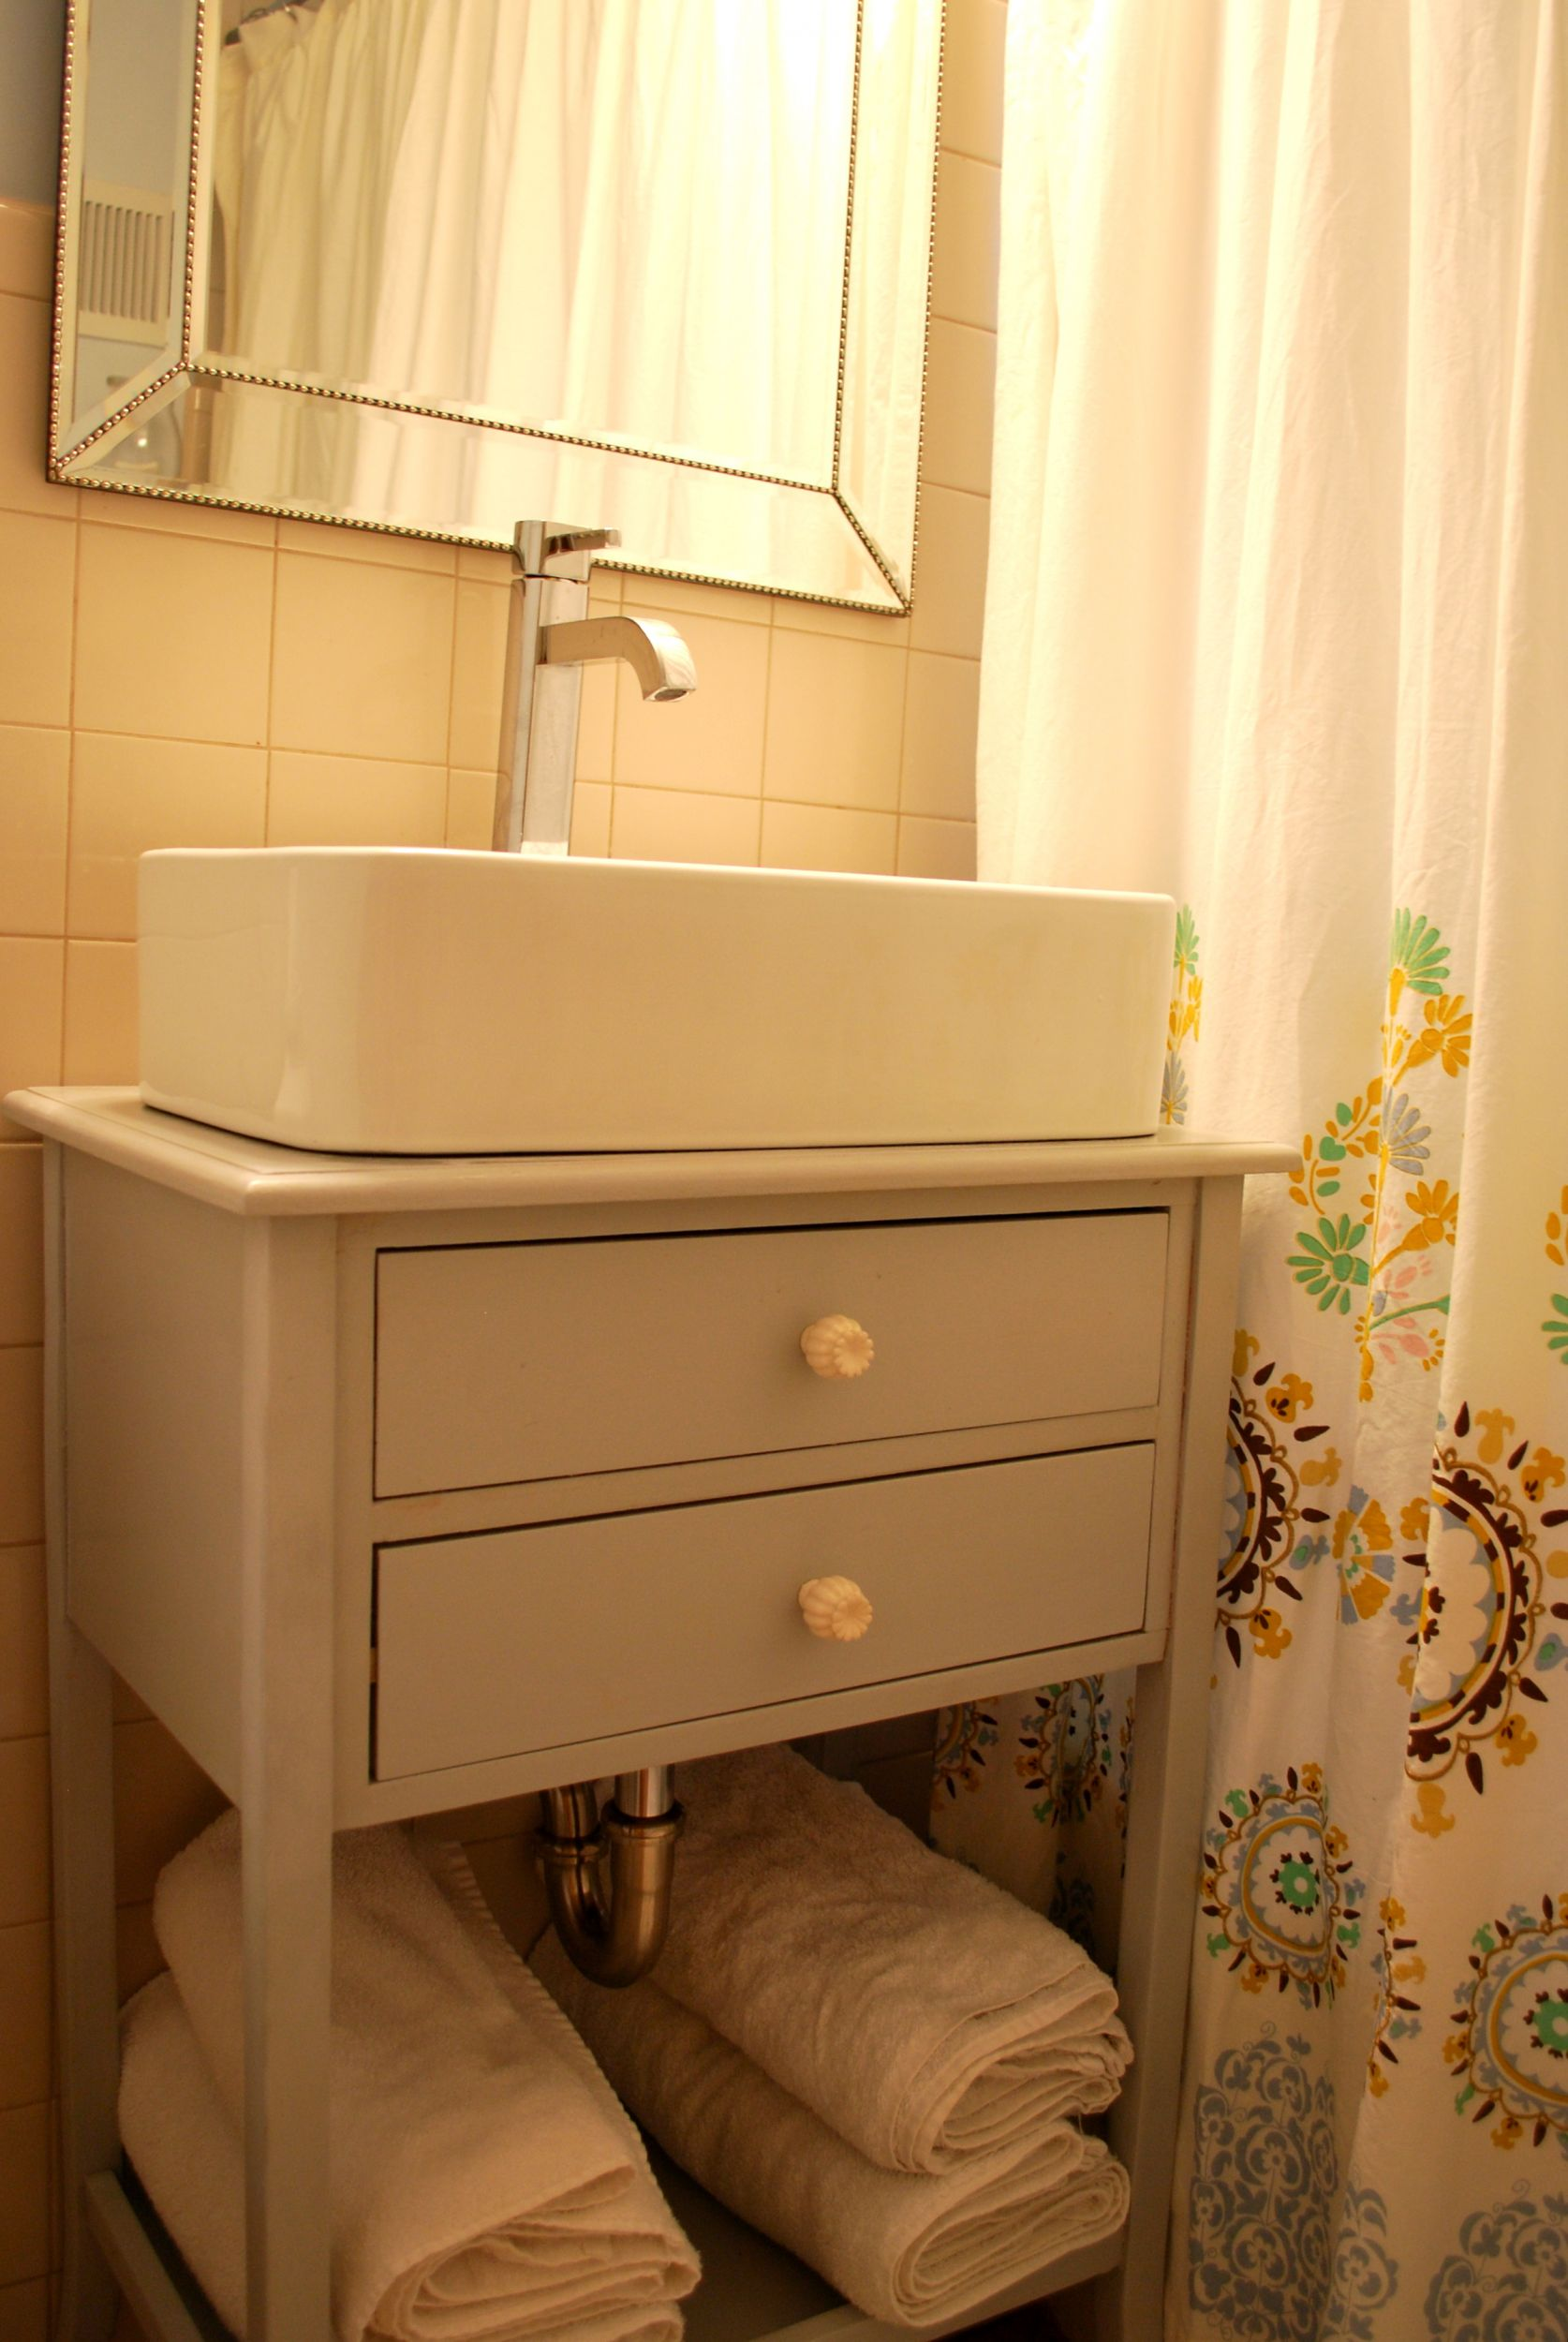 DIY Vessel Sink Cabinet {The Suburban Urbanist}